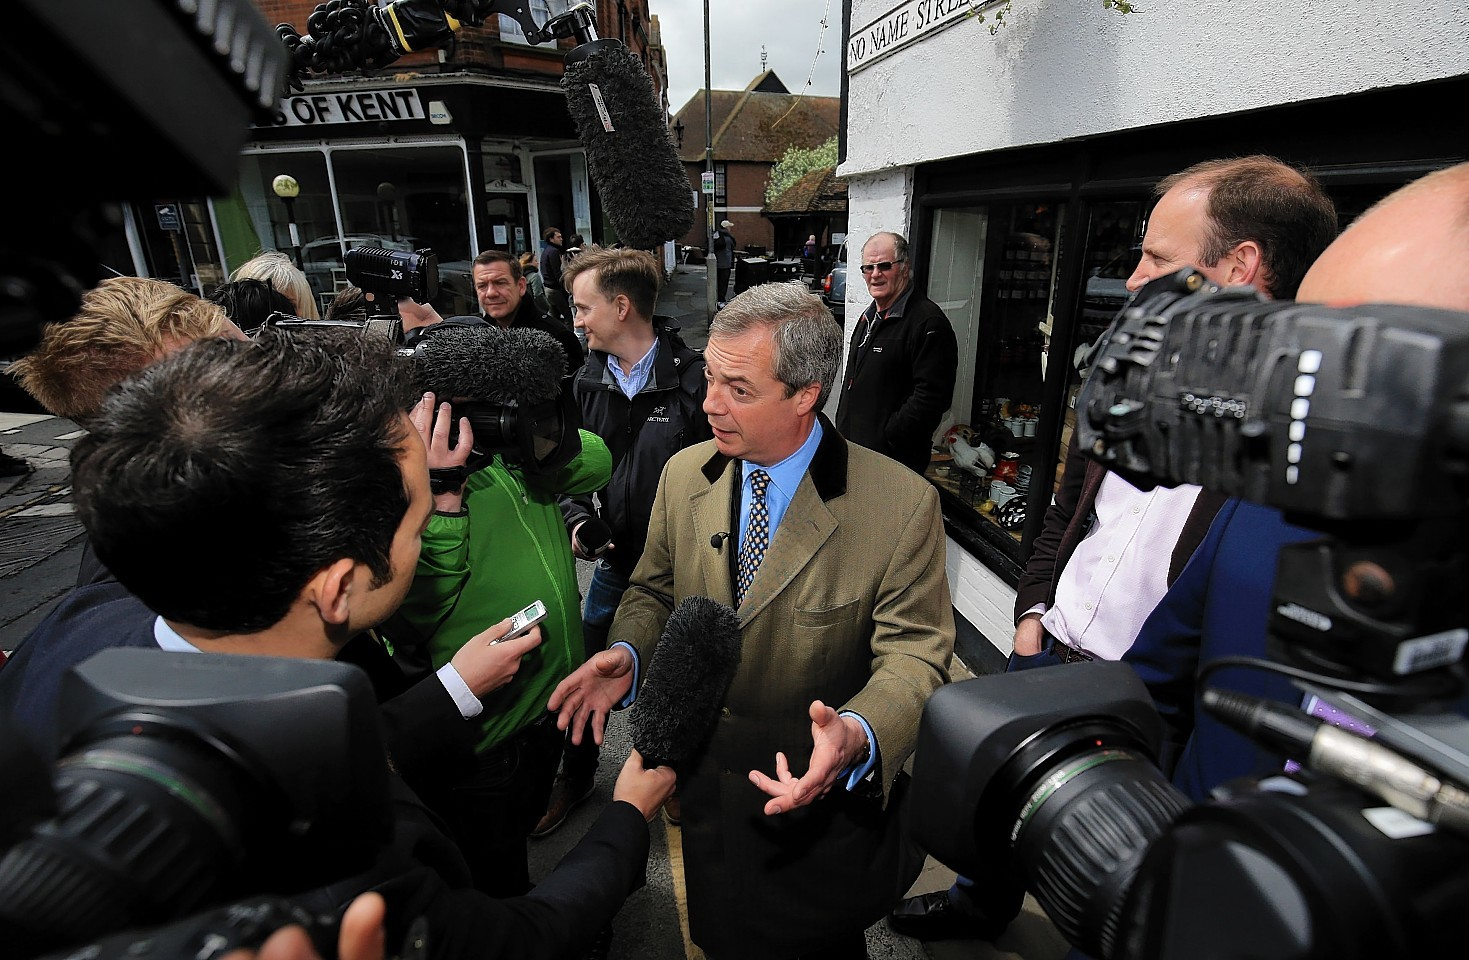 Ukip leader Nigel Farage (centre) speaking to the media while canvassing for support during a walk about in Sandwich, Kent, as he continues his campaign for the Thanet South seat in the General Election.